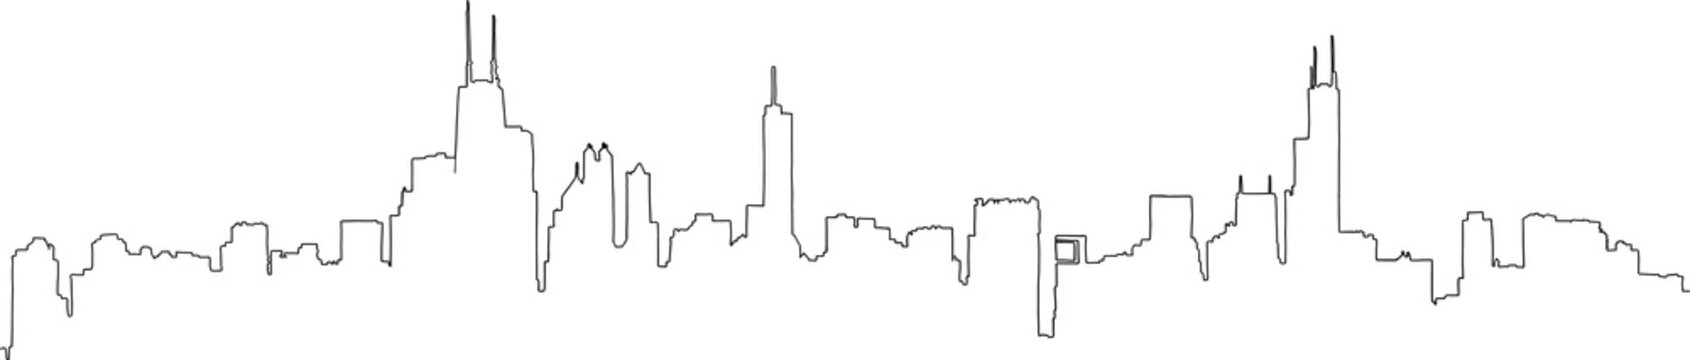 Single line outline drawing of the full Chicago skyline, including all the famous landmark towers. Hand drawn vector illustration.